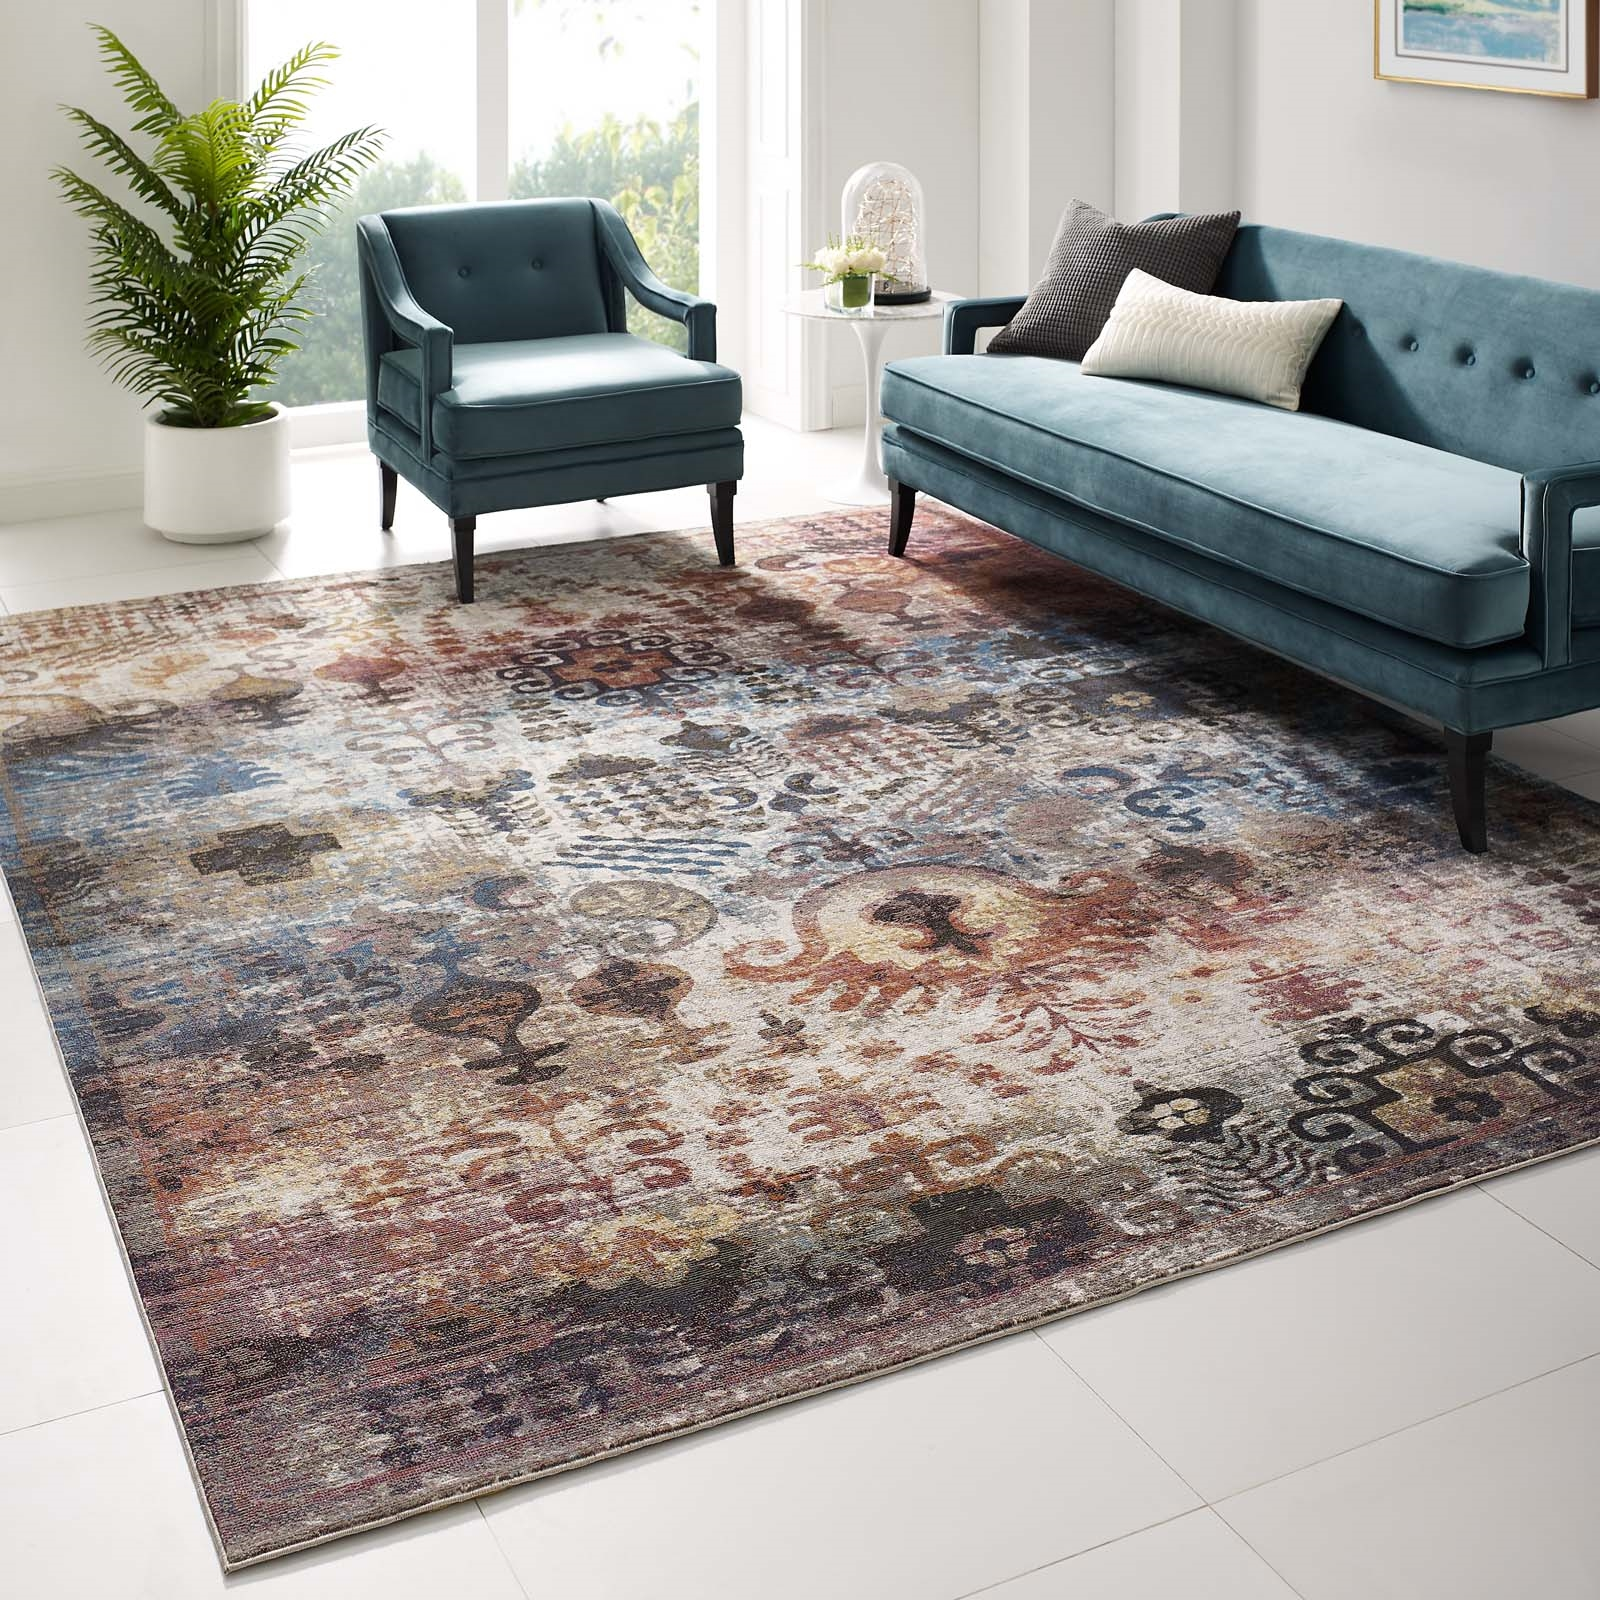 Success Tahira Transitional Distressed Vintage Floral Moroccan Trellis 8x10 Area Rug in Multicolored